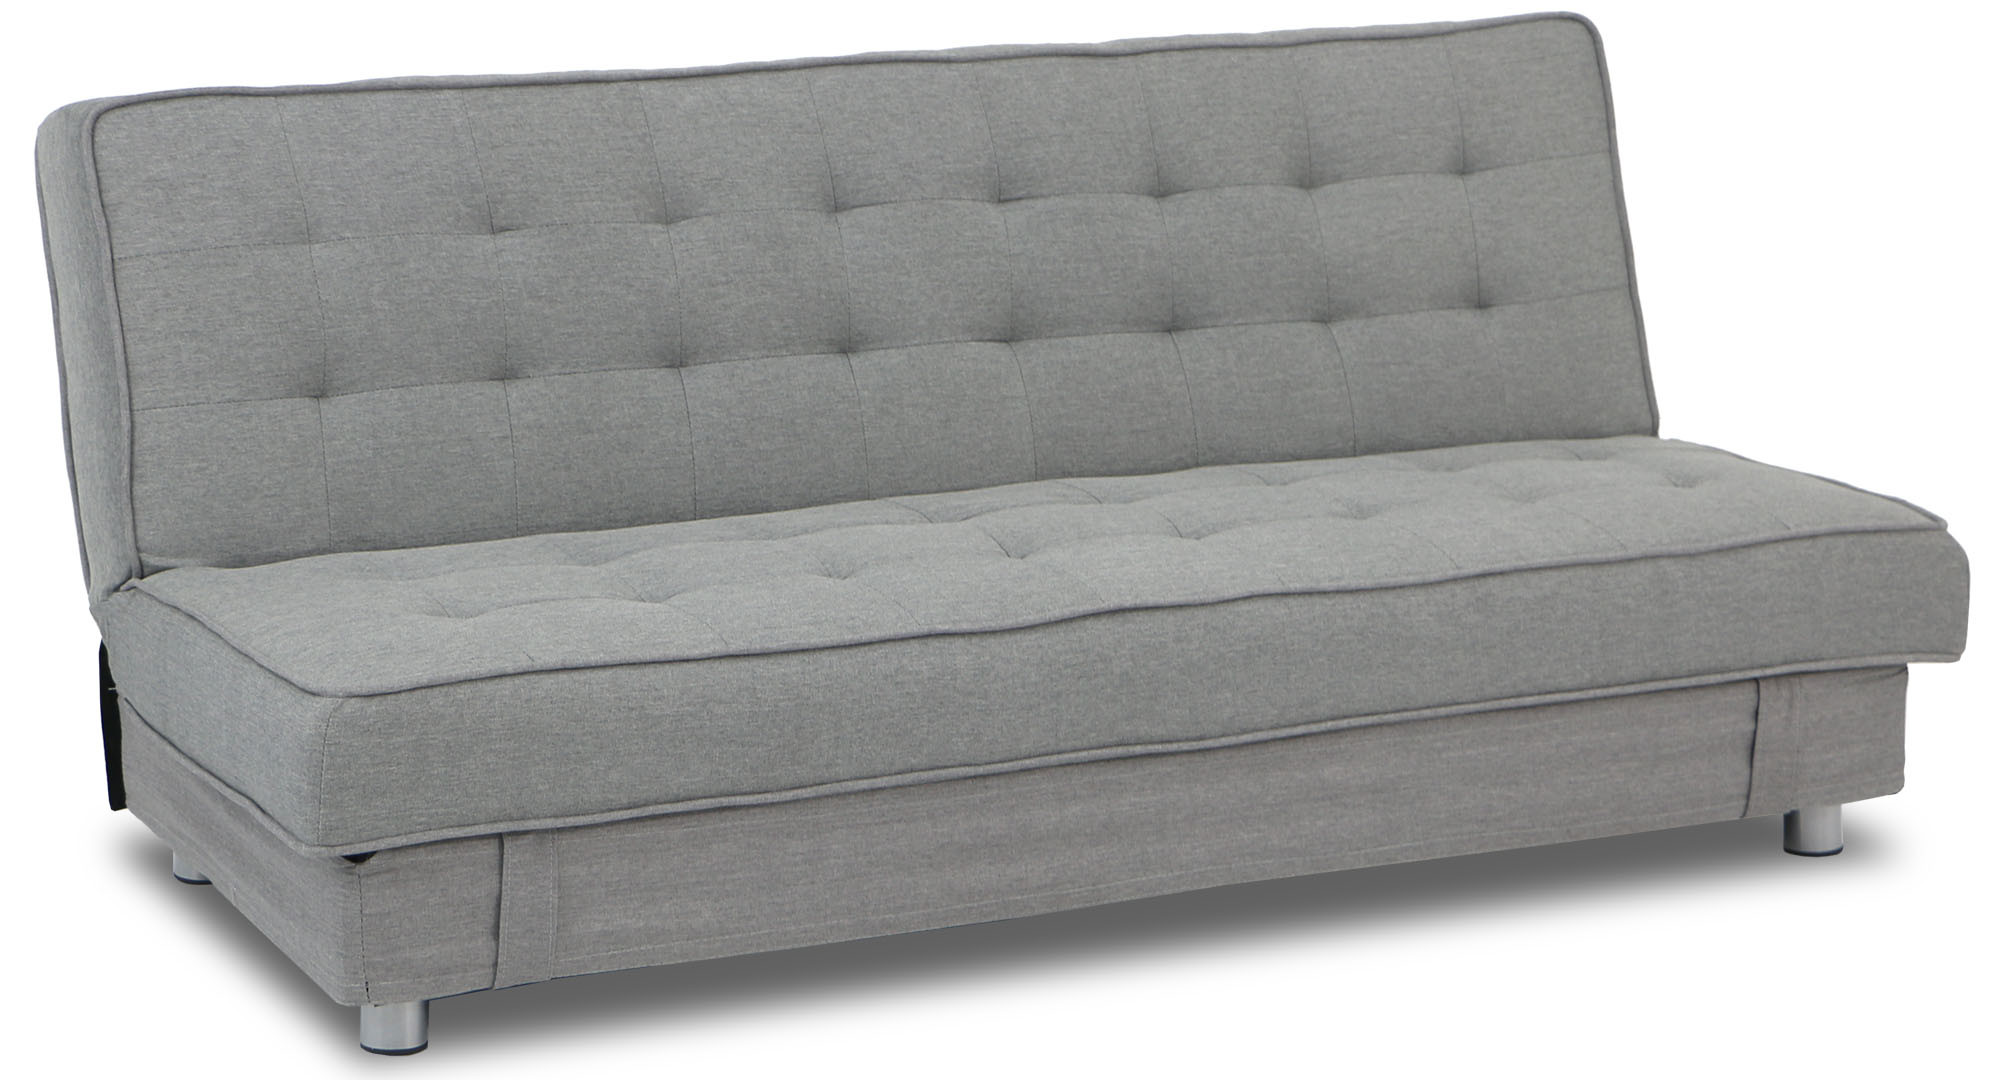 Sofa Beds Grey Venice Fabric Bed Next Day Delivery